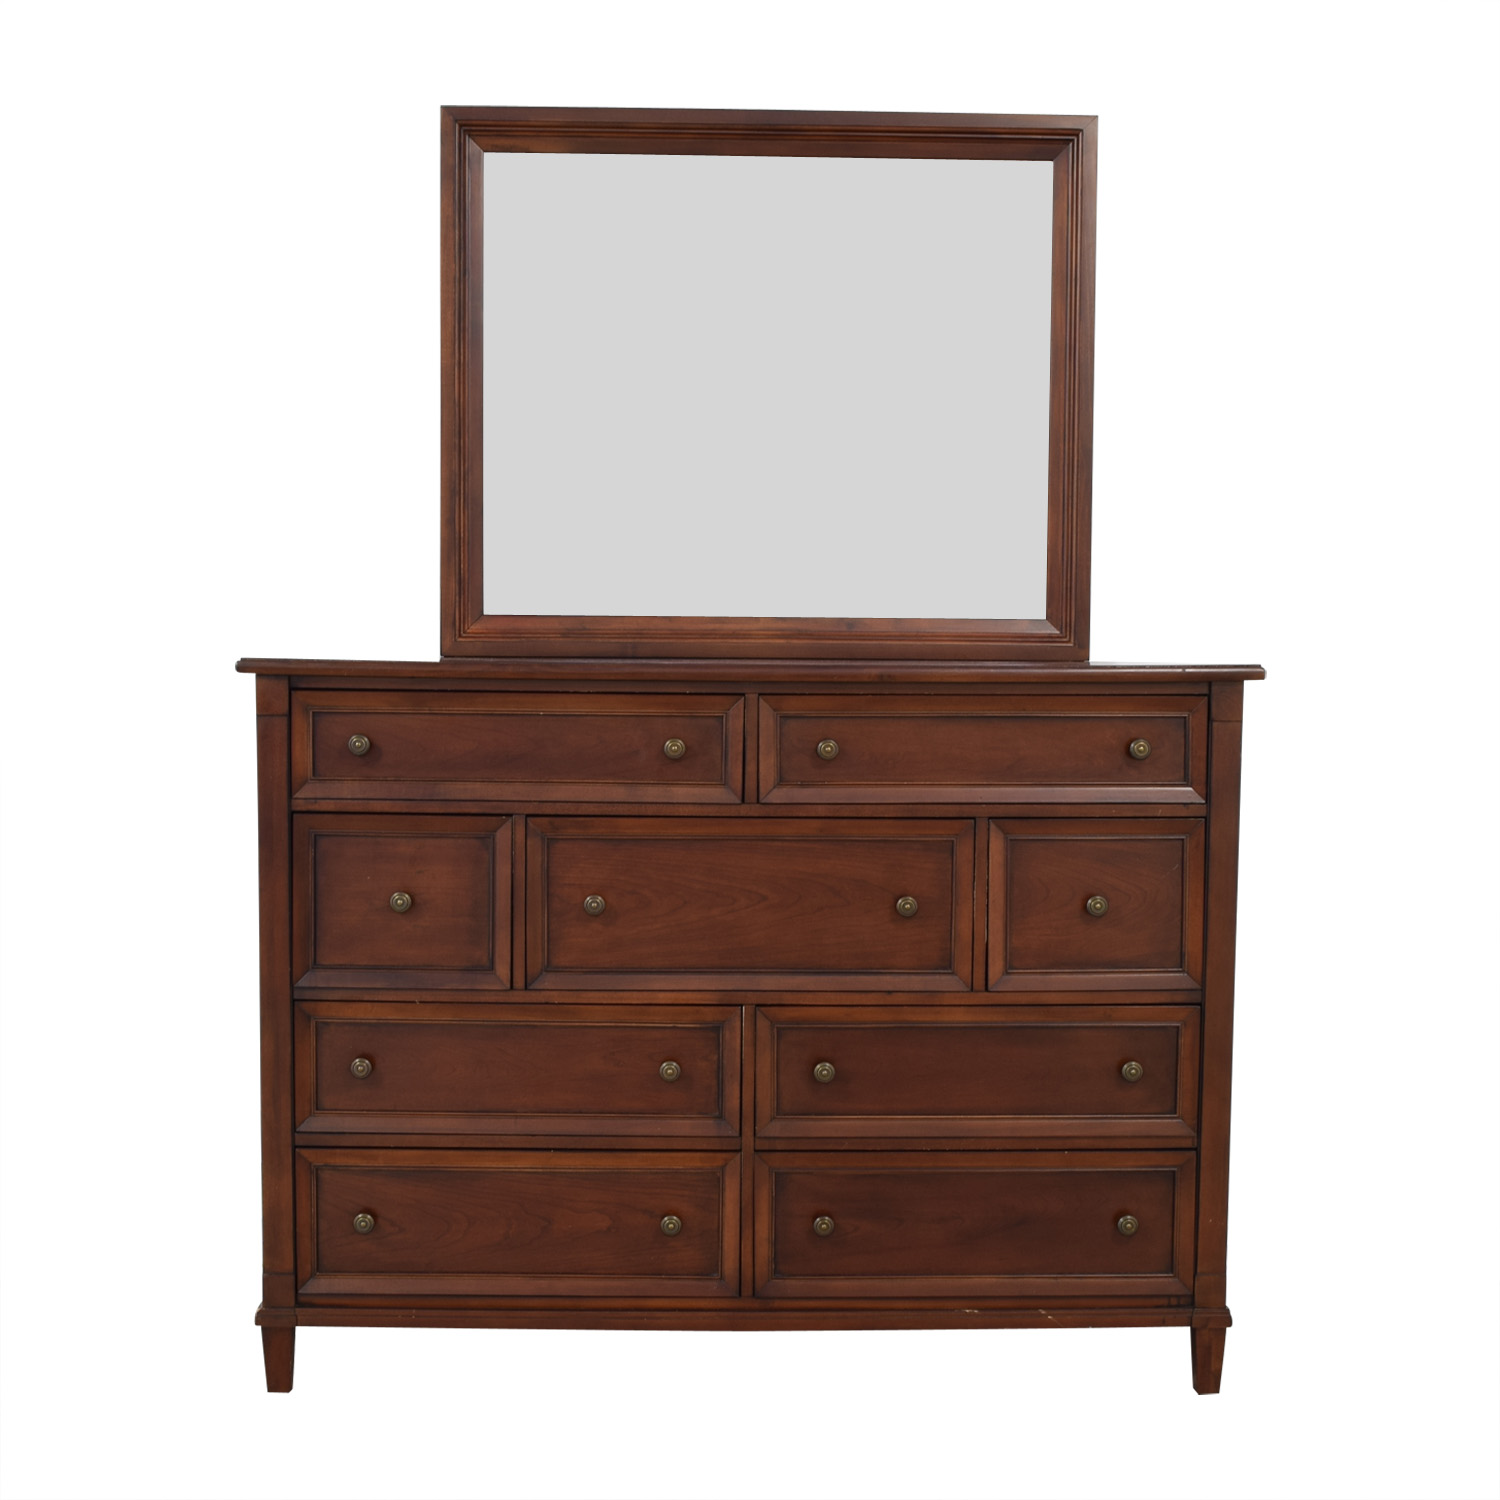 Bassett Furniture Bassett Furniture Dresser with Mirror coupon